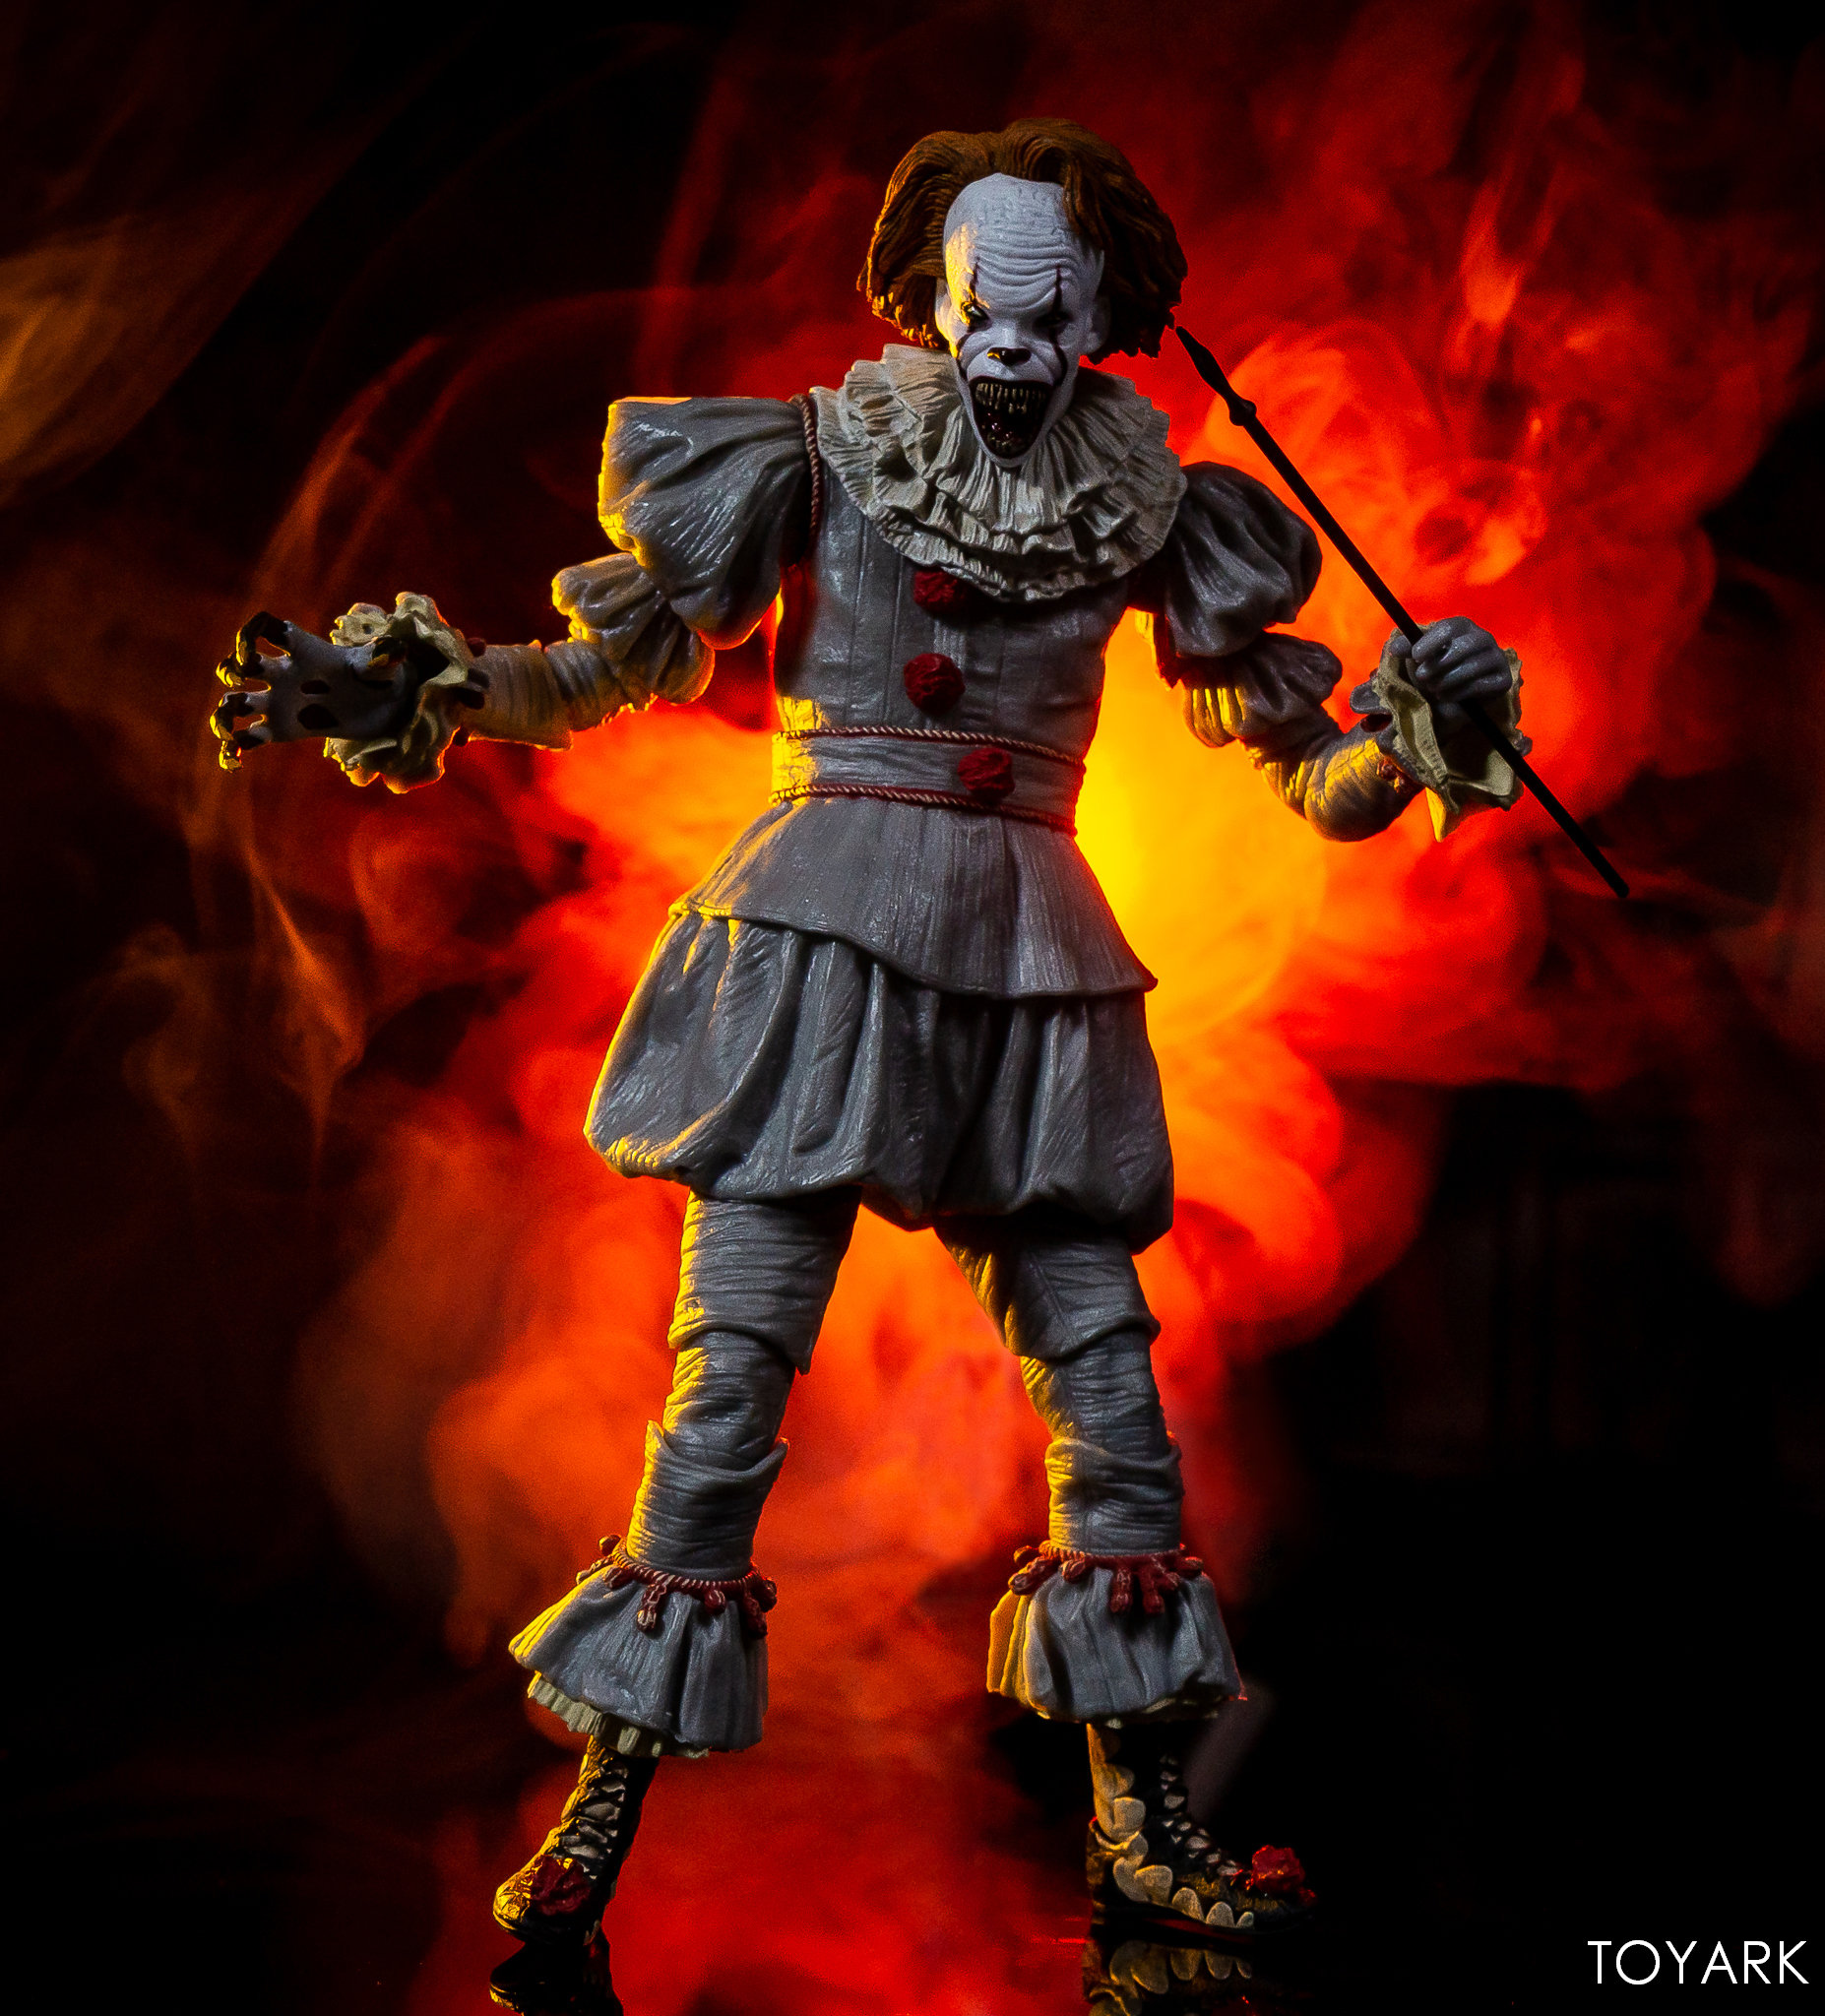 https://news.toyark.com/wp-content/uploads/sites/4/2019/03/Well-House-Pennywise-Gallery-026.jpg